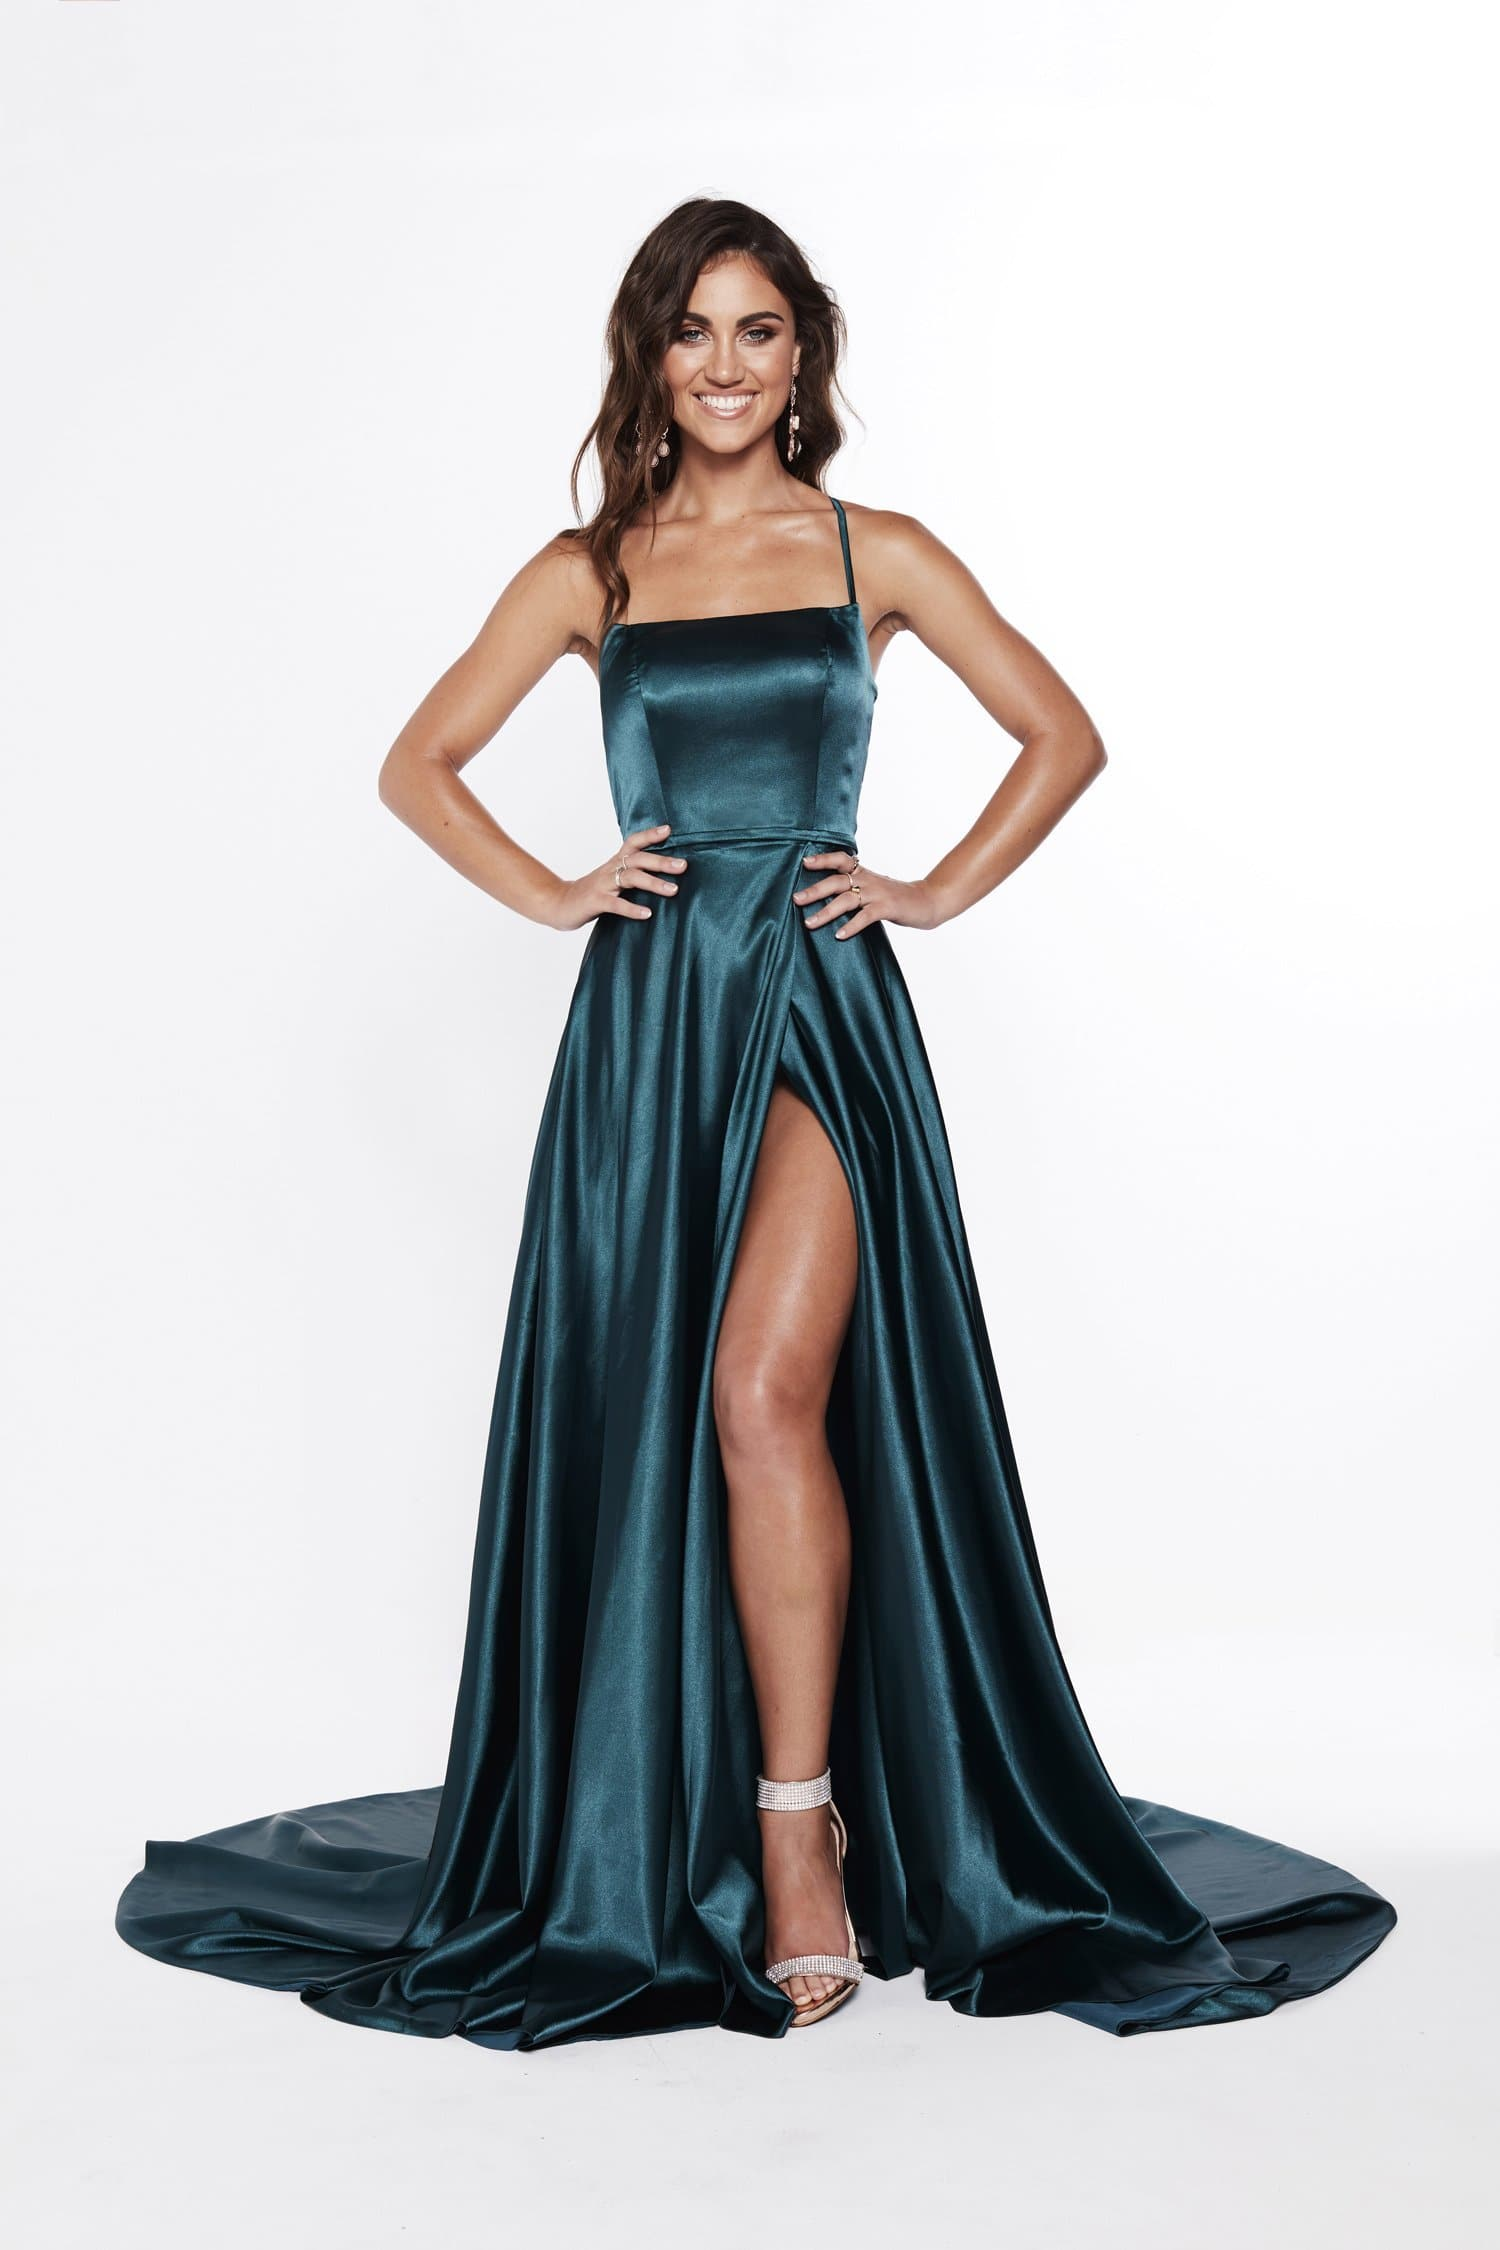 A&N Bianca - Teal Satin Gown with Front Slit and Lace up Back